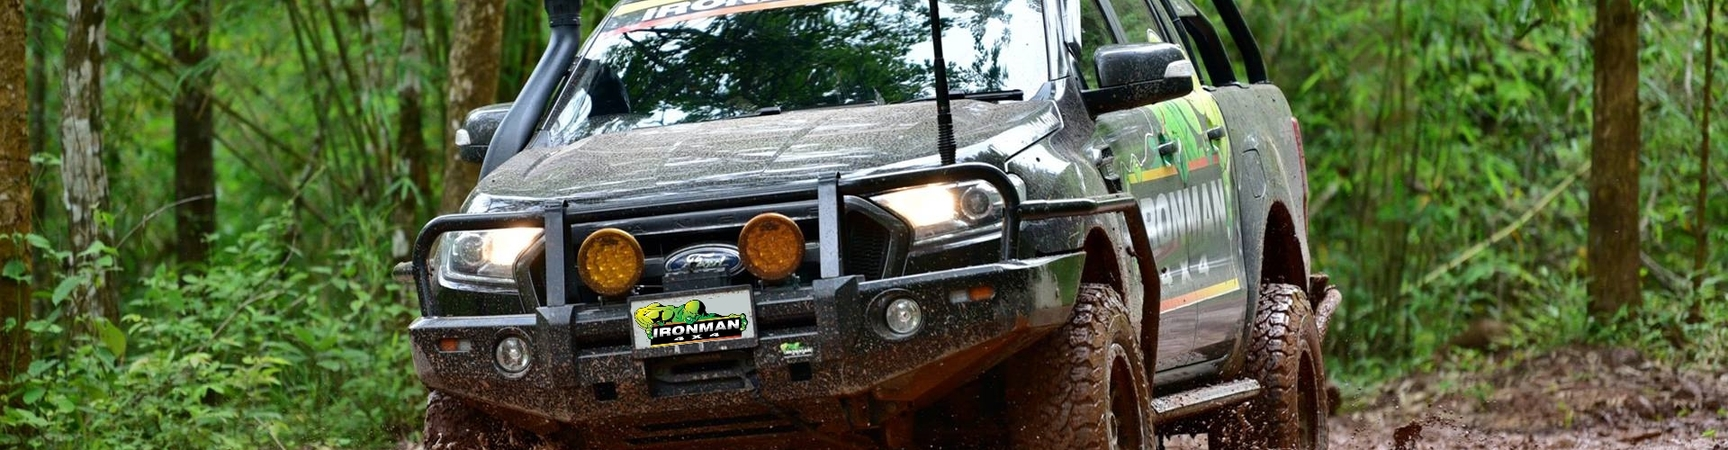 Ranger%20in%20mud